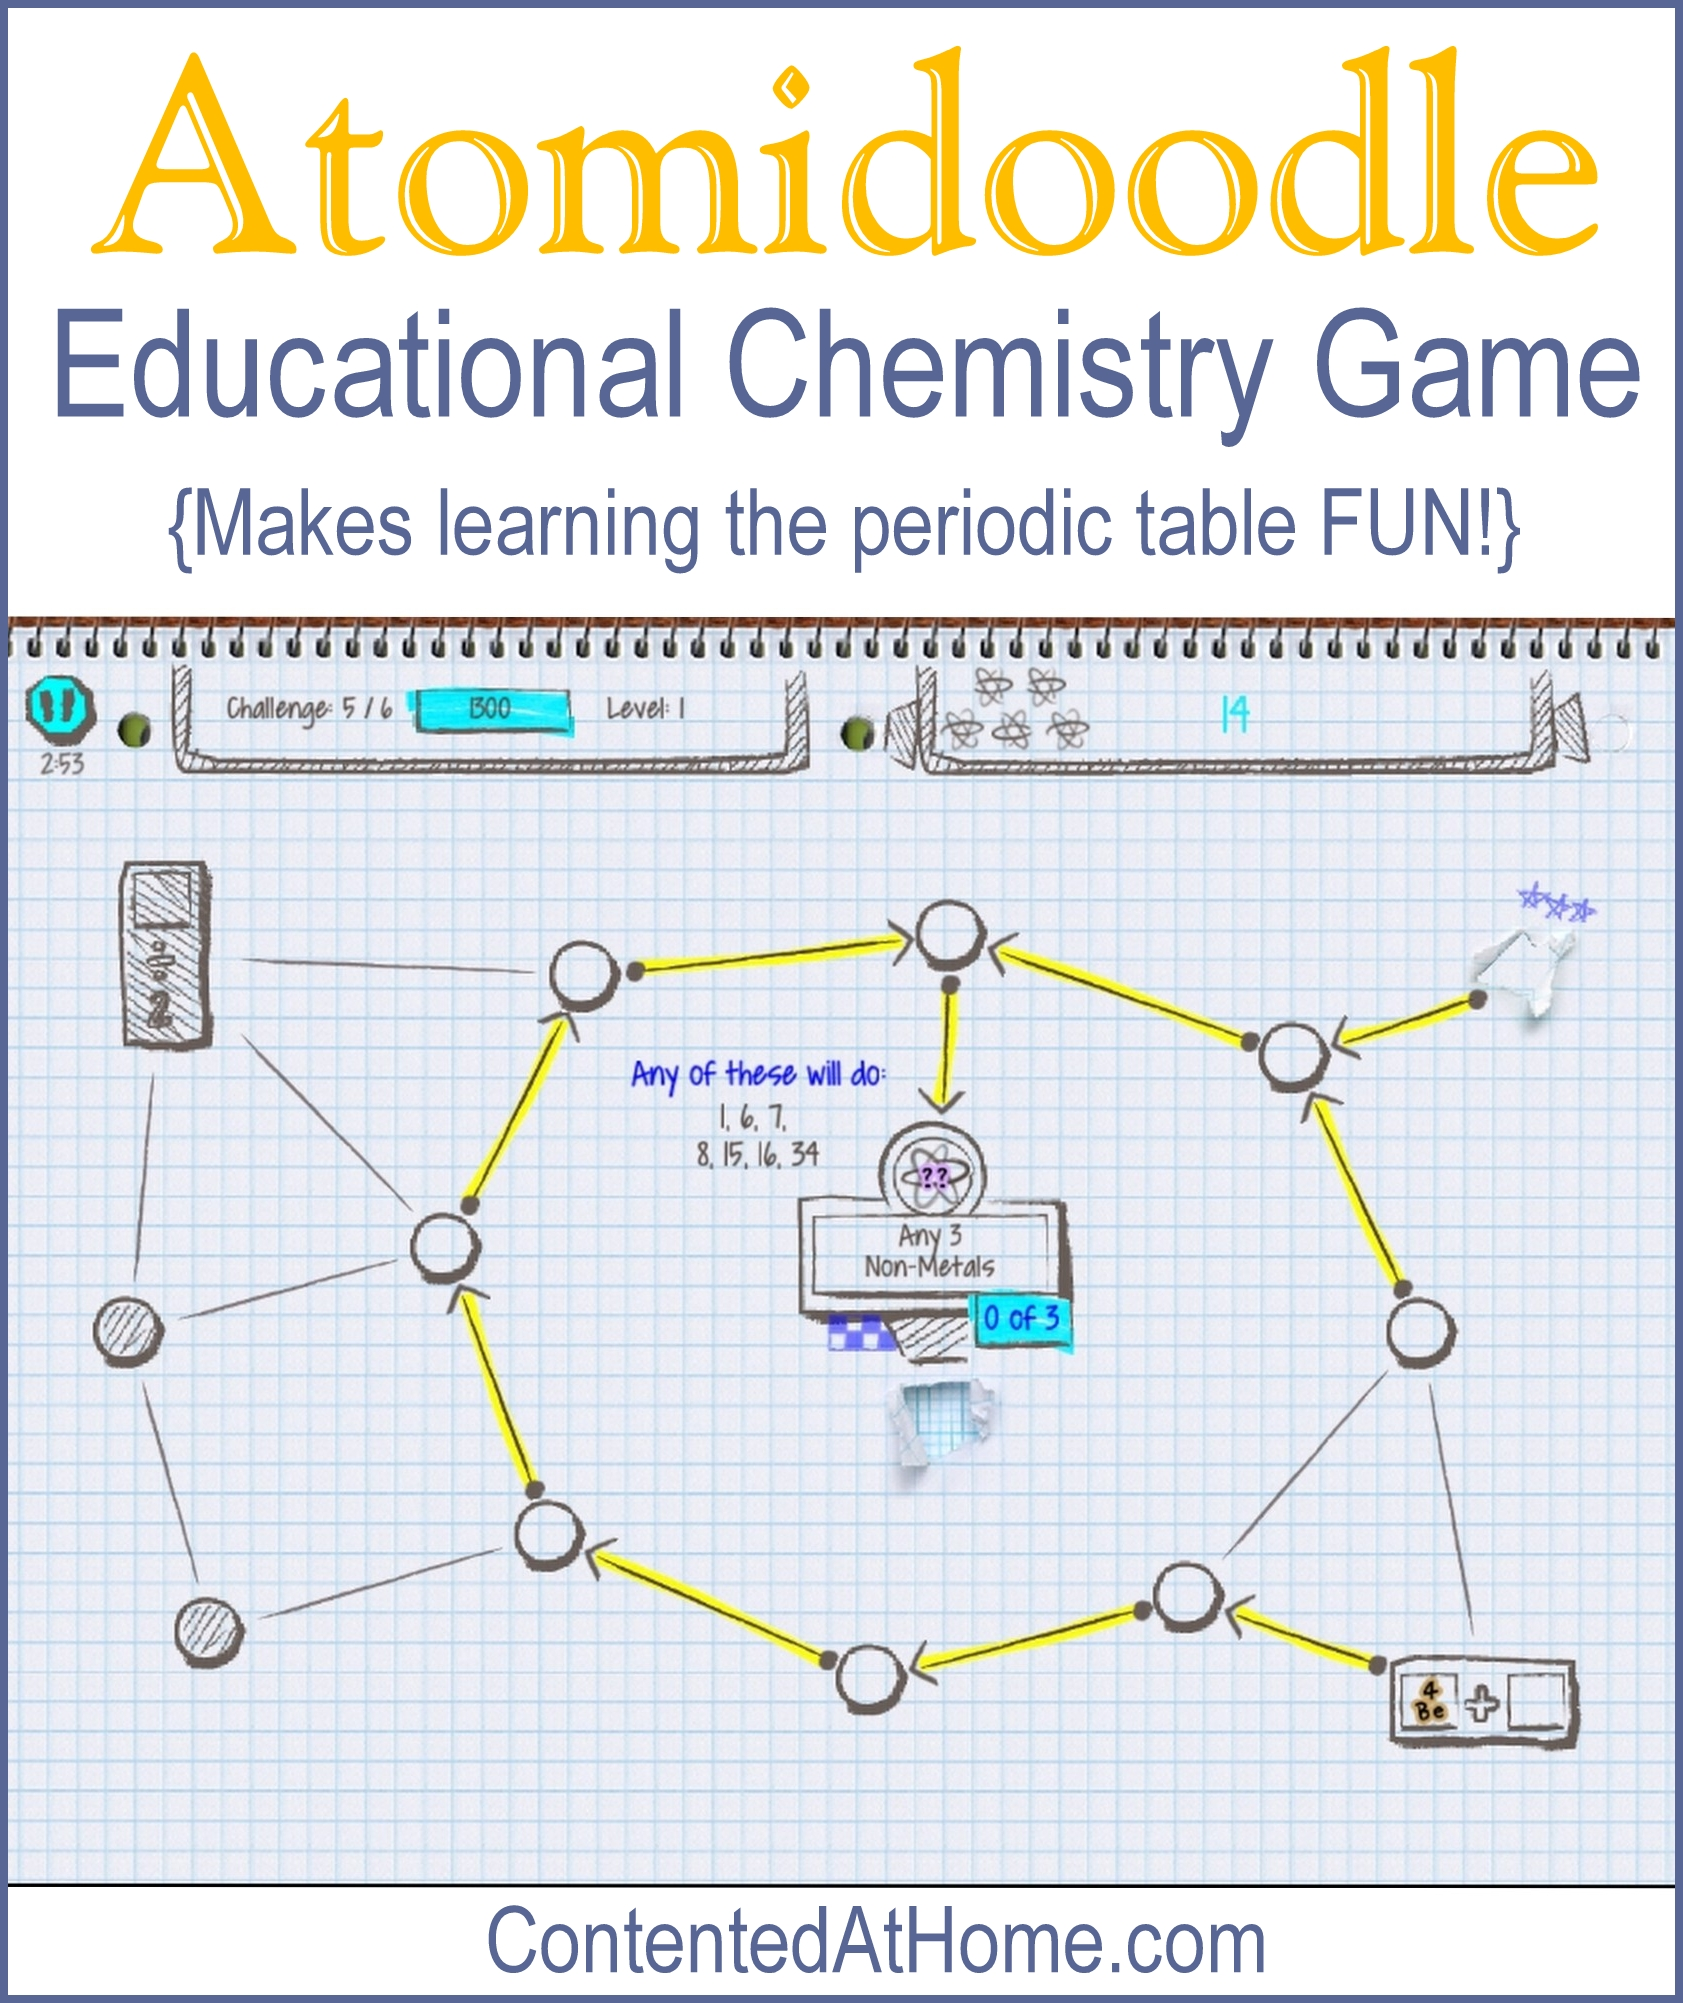 Atomidoodle: Educational Chemistry Game | Contented at Home